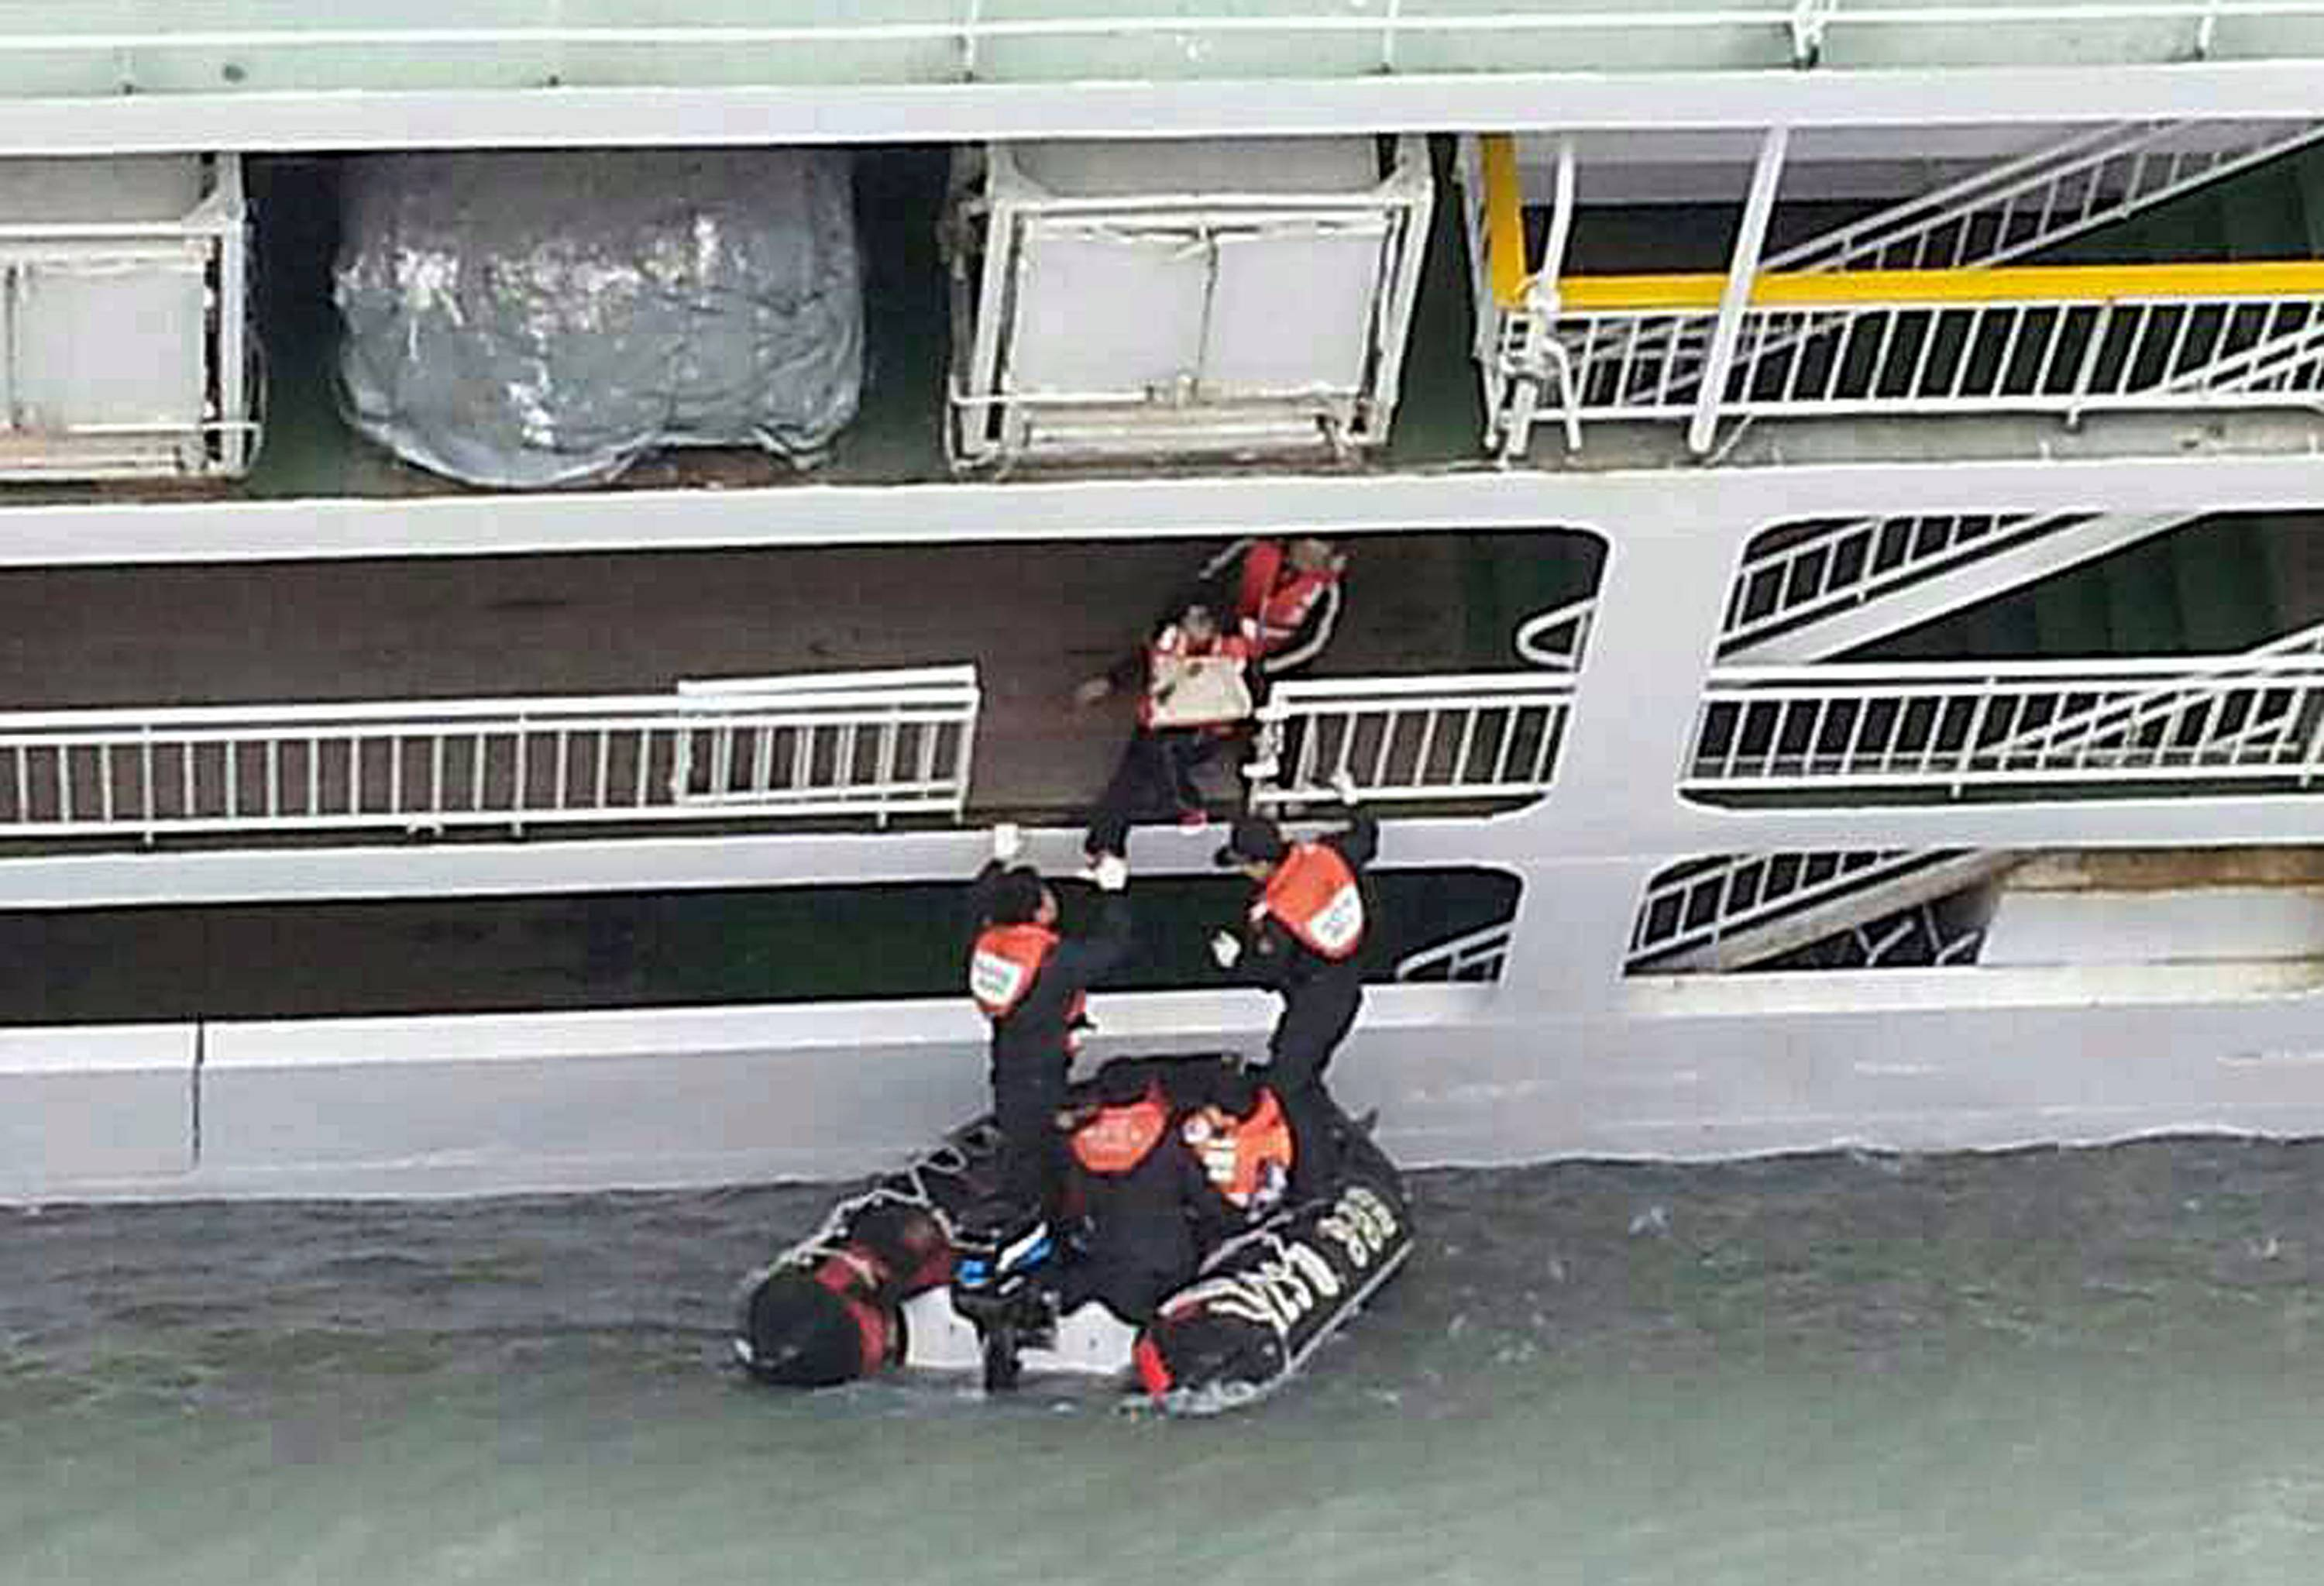 In this photo released by the South Korean Coast Guard via Yonhap News Agency, South Korean coast guard officers rescue passengers from a sinking ferry off the southern coast near Jindo, south of Seoul, South Korea, Wednesday, April 16, 2014. A ferry carrying 459 people, mostly high school students on an overnight trip to a tourist island, sank off South Korea's southern coast on Wednesday, leaving nearly 300 people missing despite a frantic, hourslong rescue by dozens of ships and helicopters.